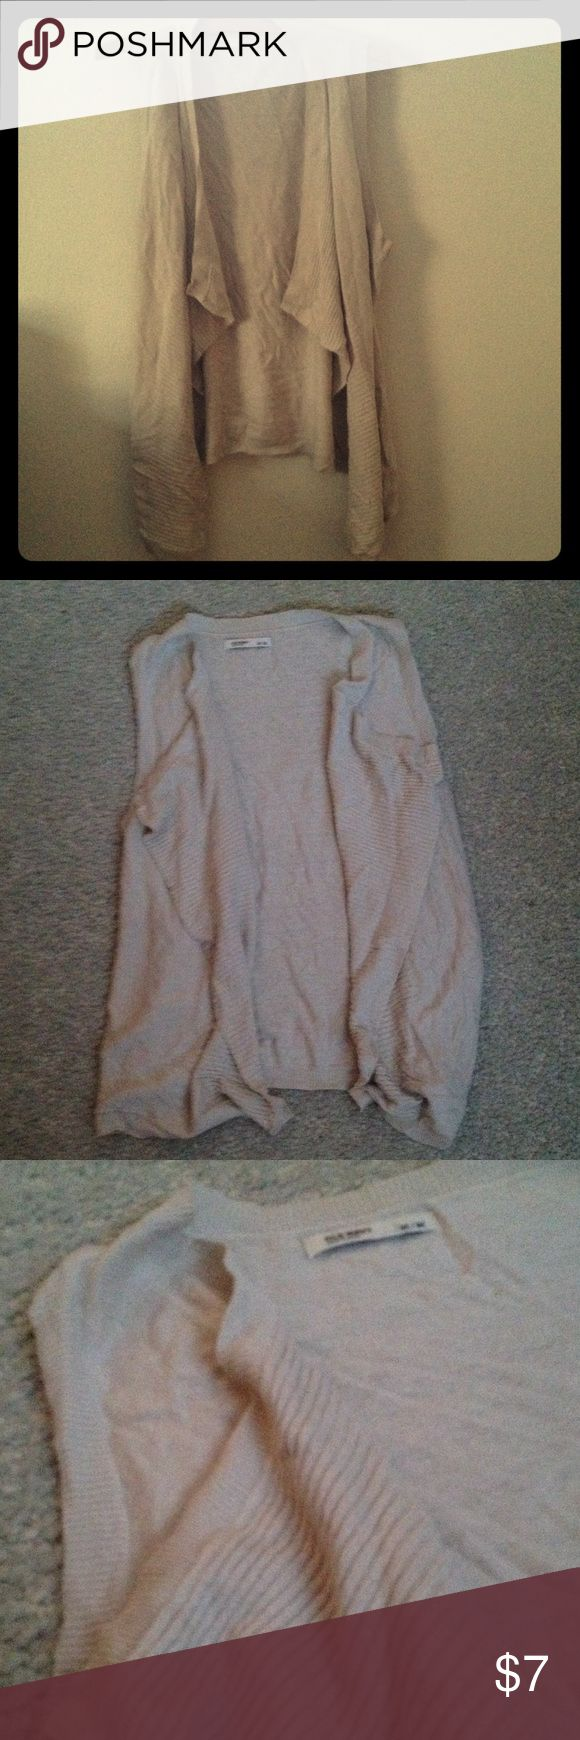 Beautiful women's sleeveless sweater! Cream colored women's sleeveless sweater, size M. Hardly ever worn. Old Navy Sweaters Shrugs & Ponchos